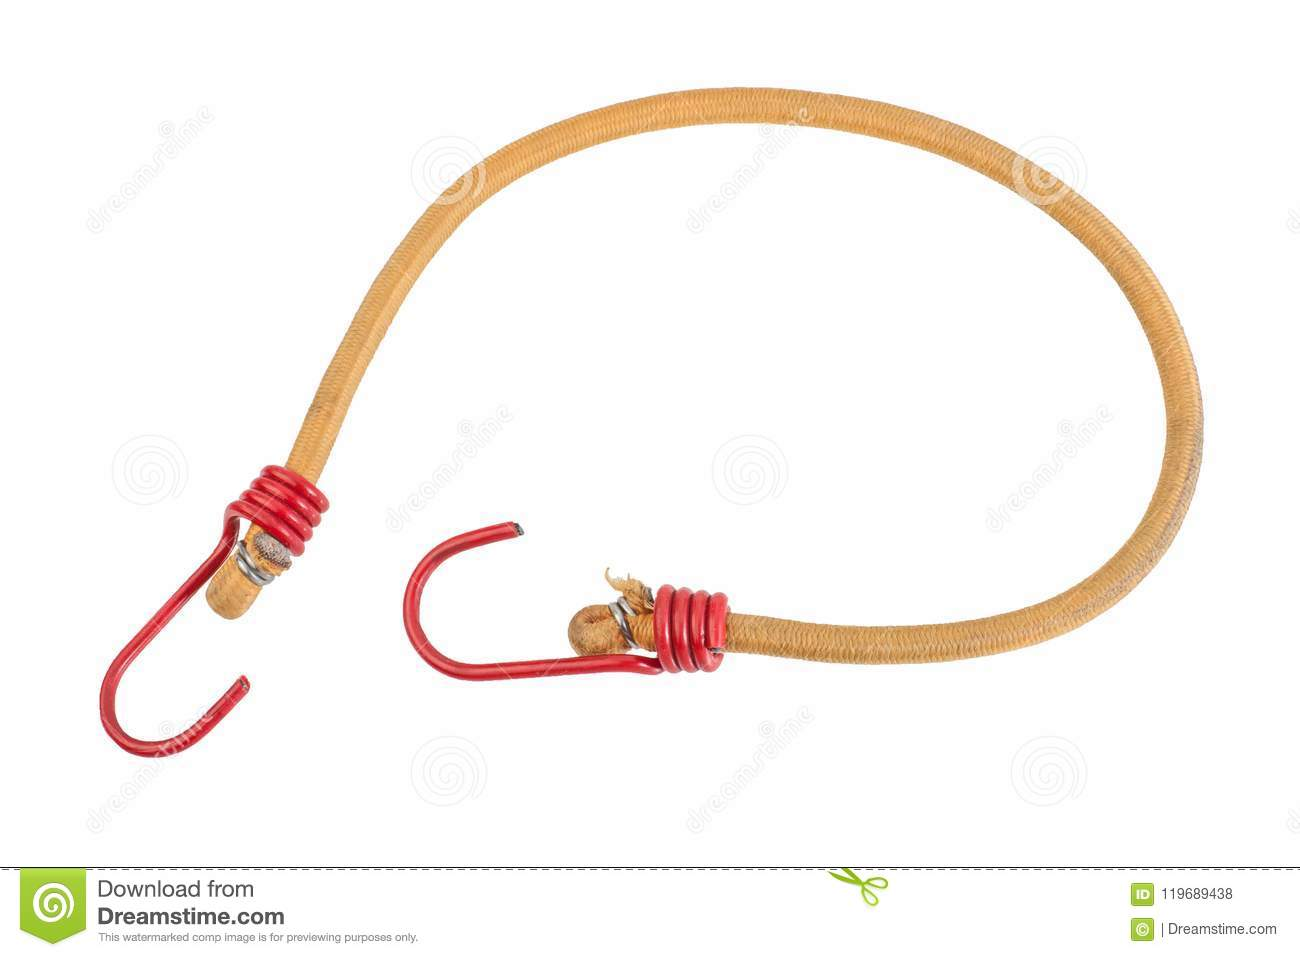 Yellow Elastic strap with a red hooks isolated on white background. Bungee cord, braided nylon stretchy rope